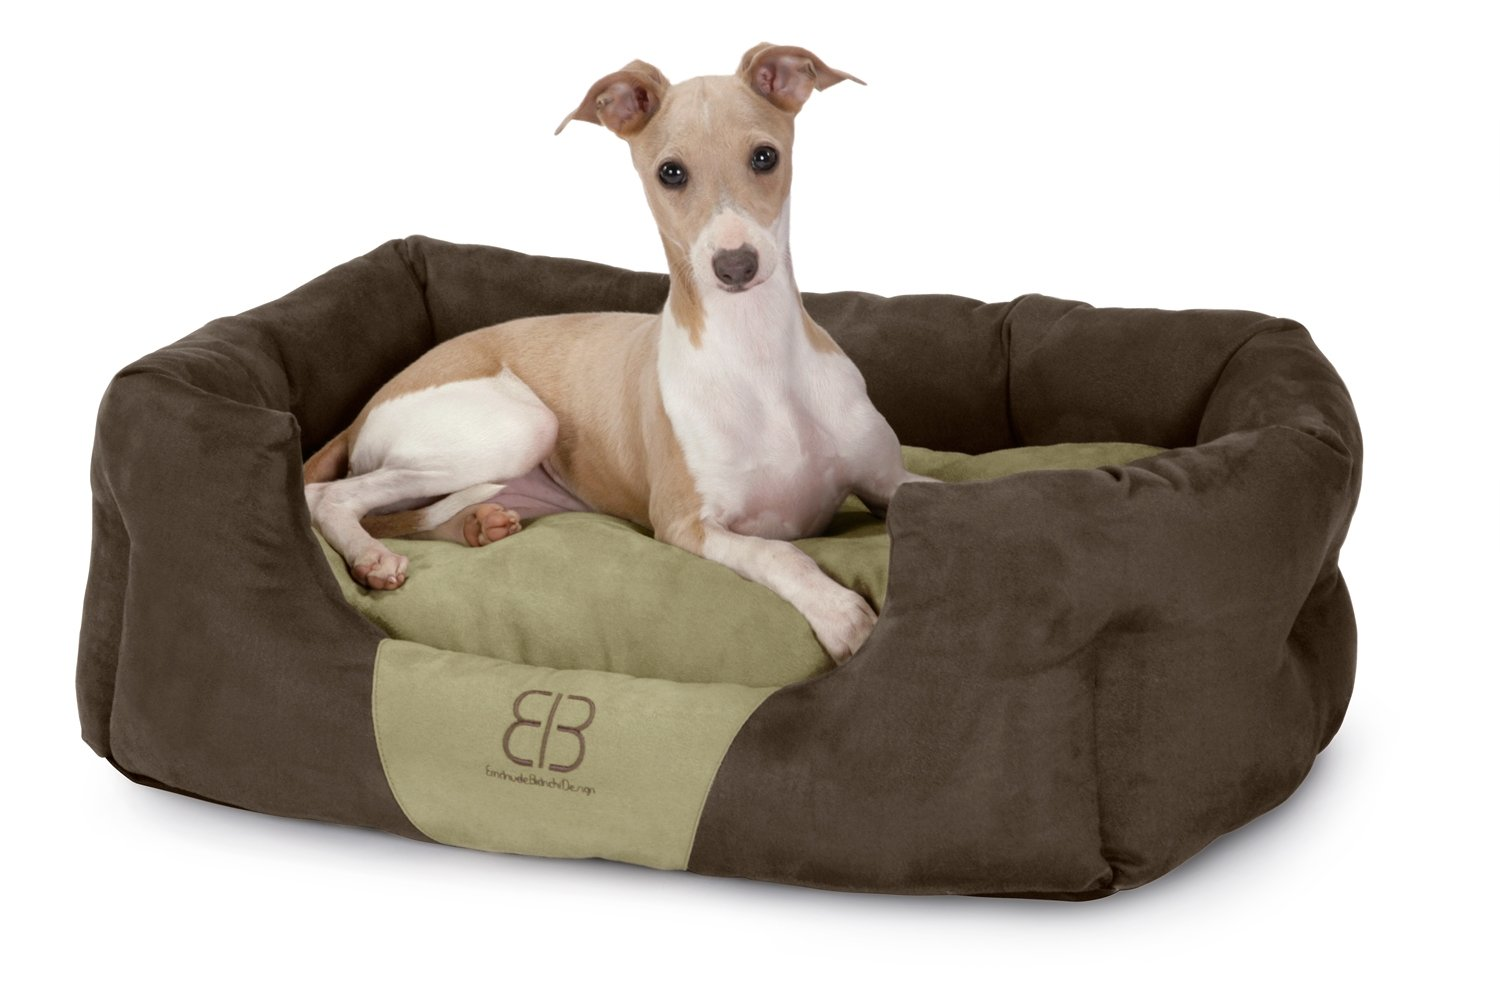 Petego Dream Bolster Pet Bed